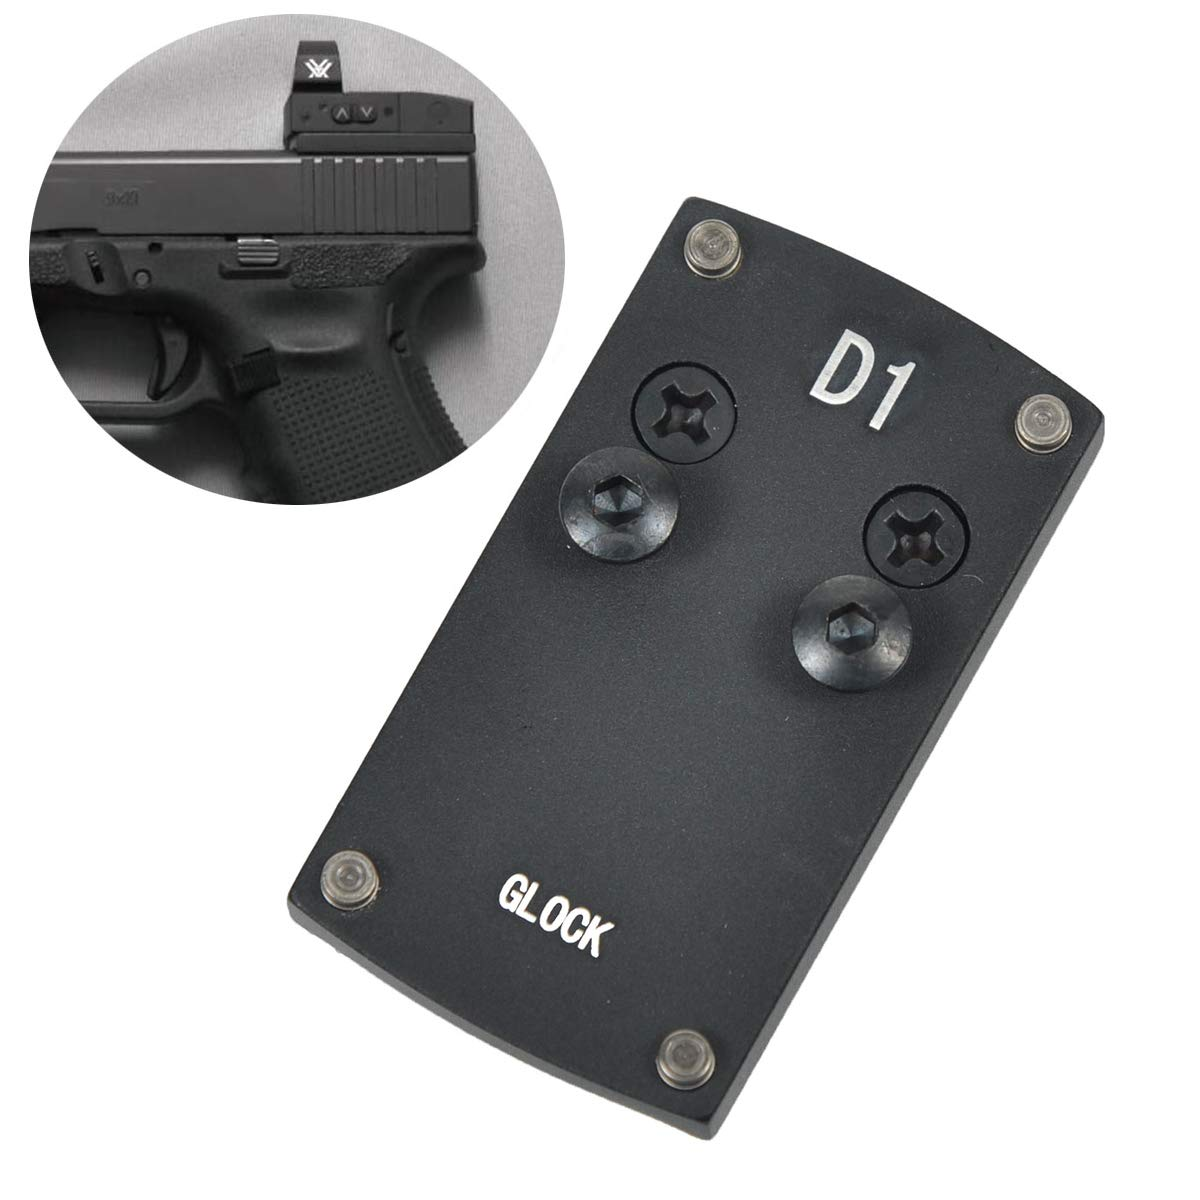 LONJN Glock 17 19 22 23 26 27 34 Mount - Vortex Venom Mount Glock Mounting Plate, Vortex Viper Mount for Glock, Glock Mount Plate for Red Dot Burris Sightmark Vortex Mini Sight